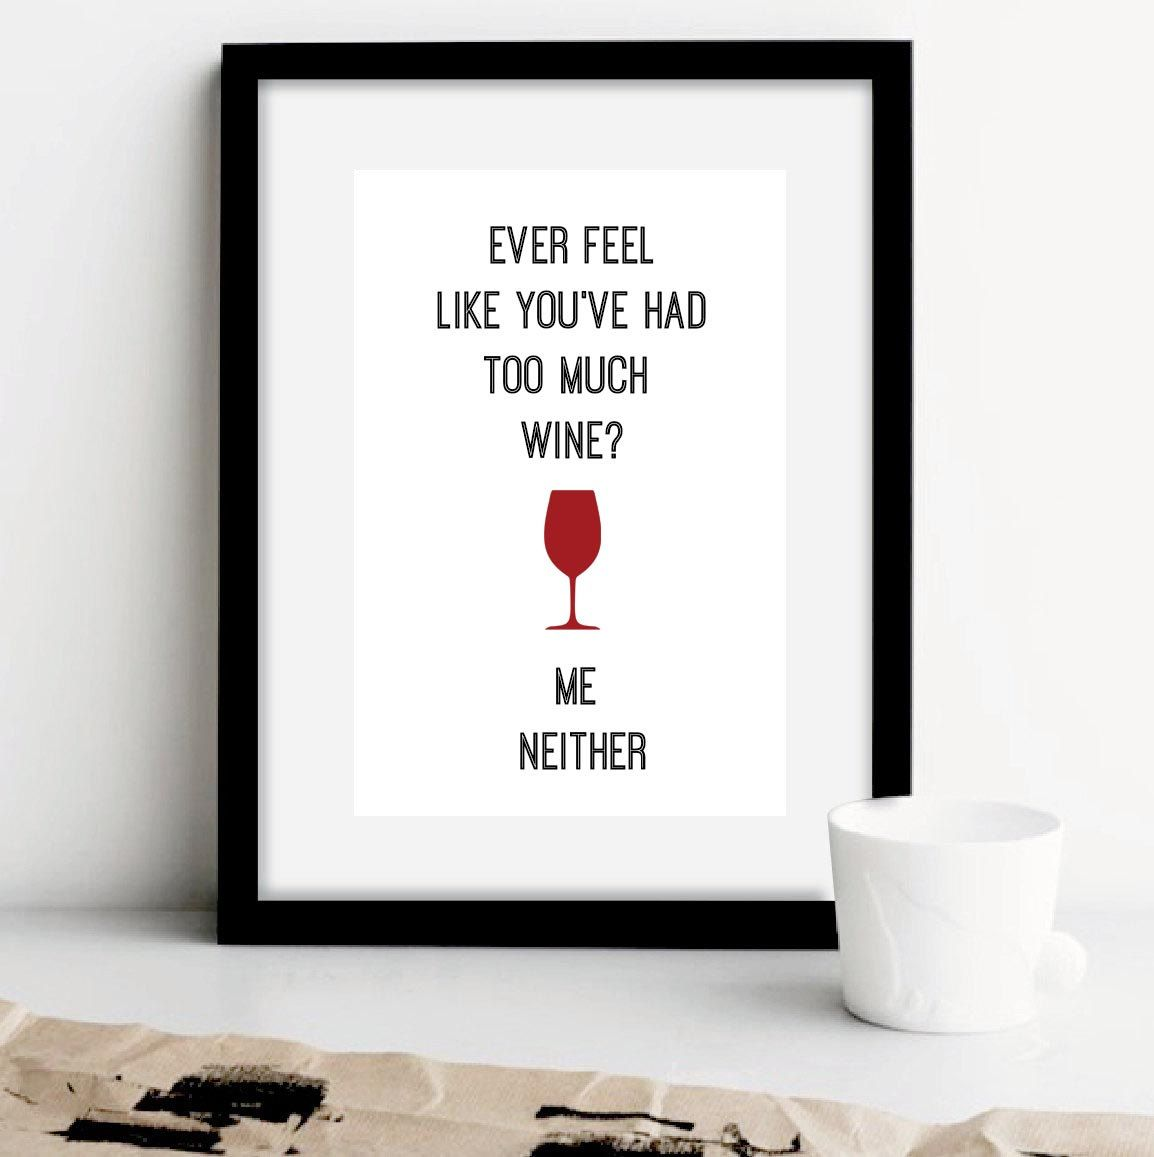 Wine Lover Gift Wine Quotes Gifts For Wine Lovers Wine Mom Wine Gifts Wine Favors Wine Funny Wine Wed Typography Prints Motivational Prints Love Posters